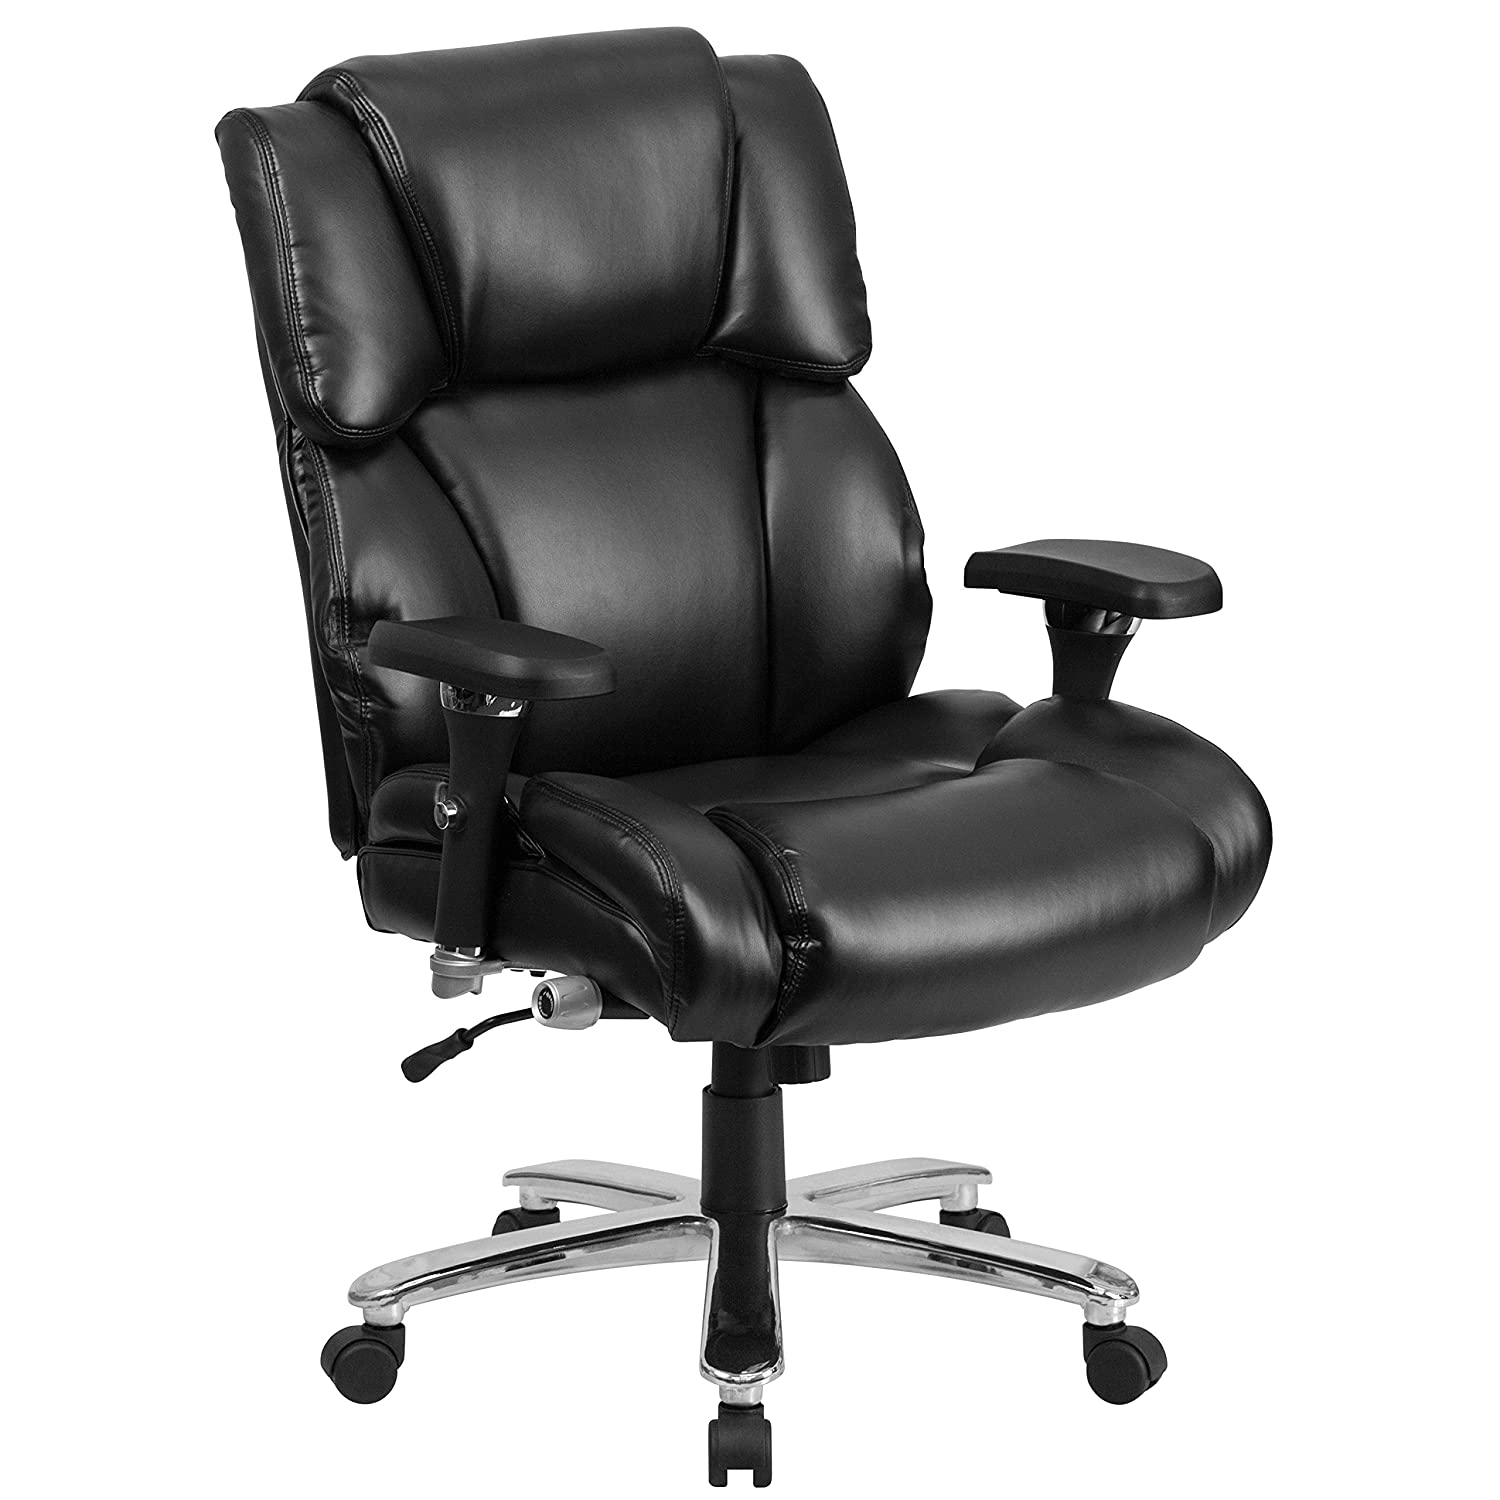 HERCULES Series 24-7 Intensive Use - Multi-Shift - Big & Tall 400 lb Capacity Black Leather Executive Swivel Chair